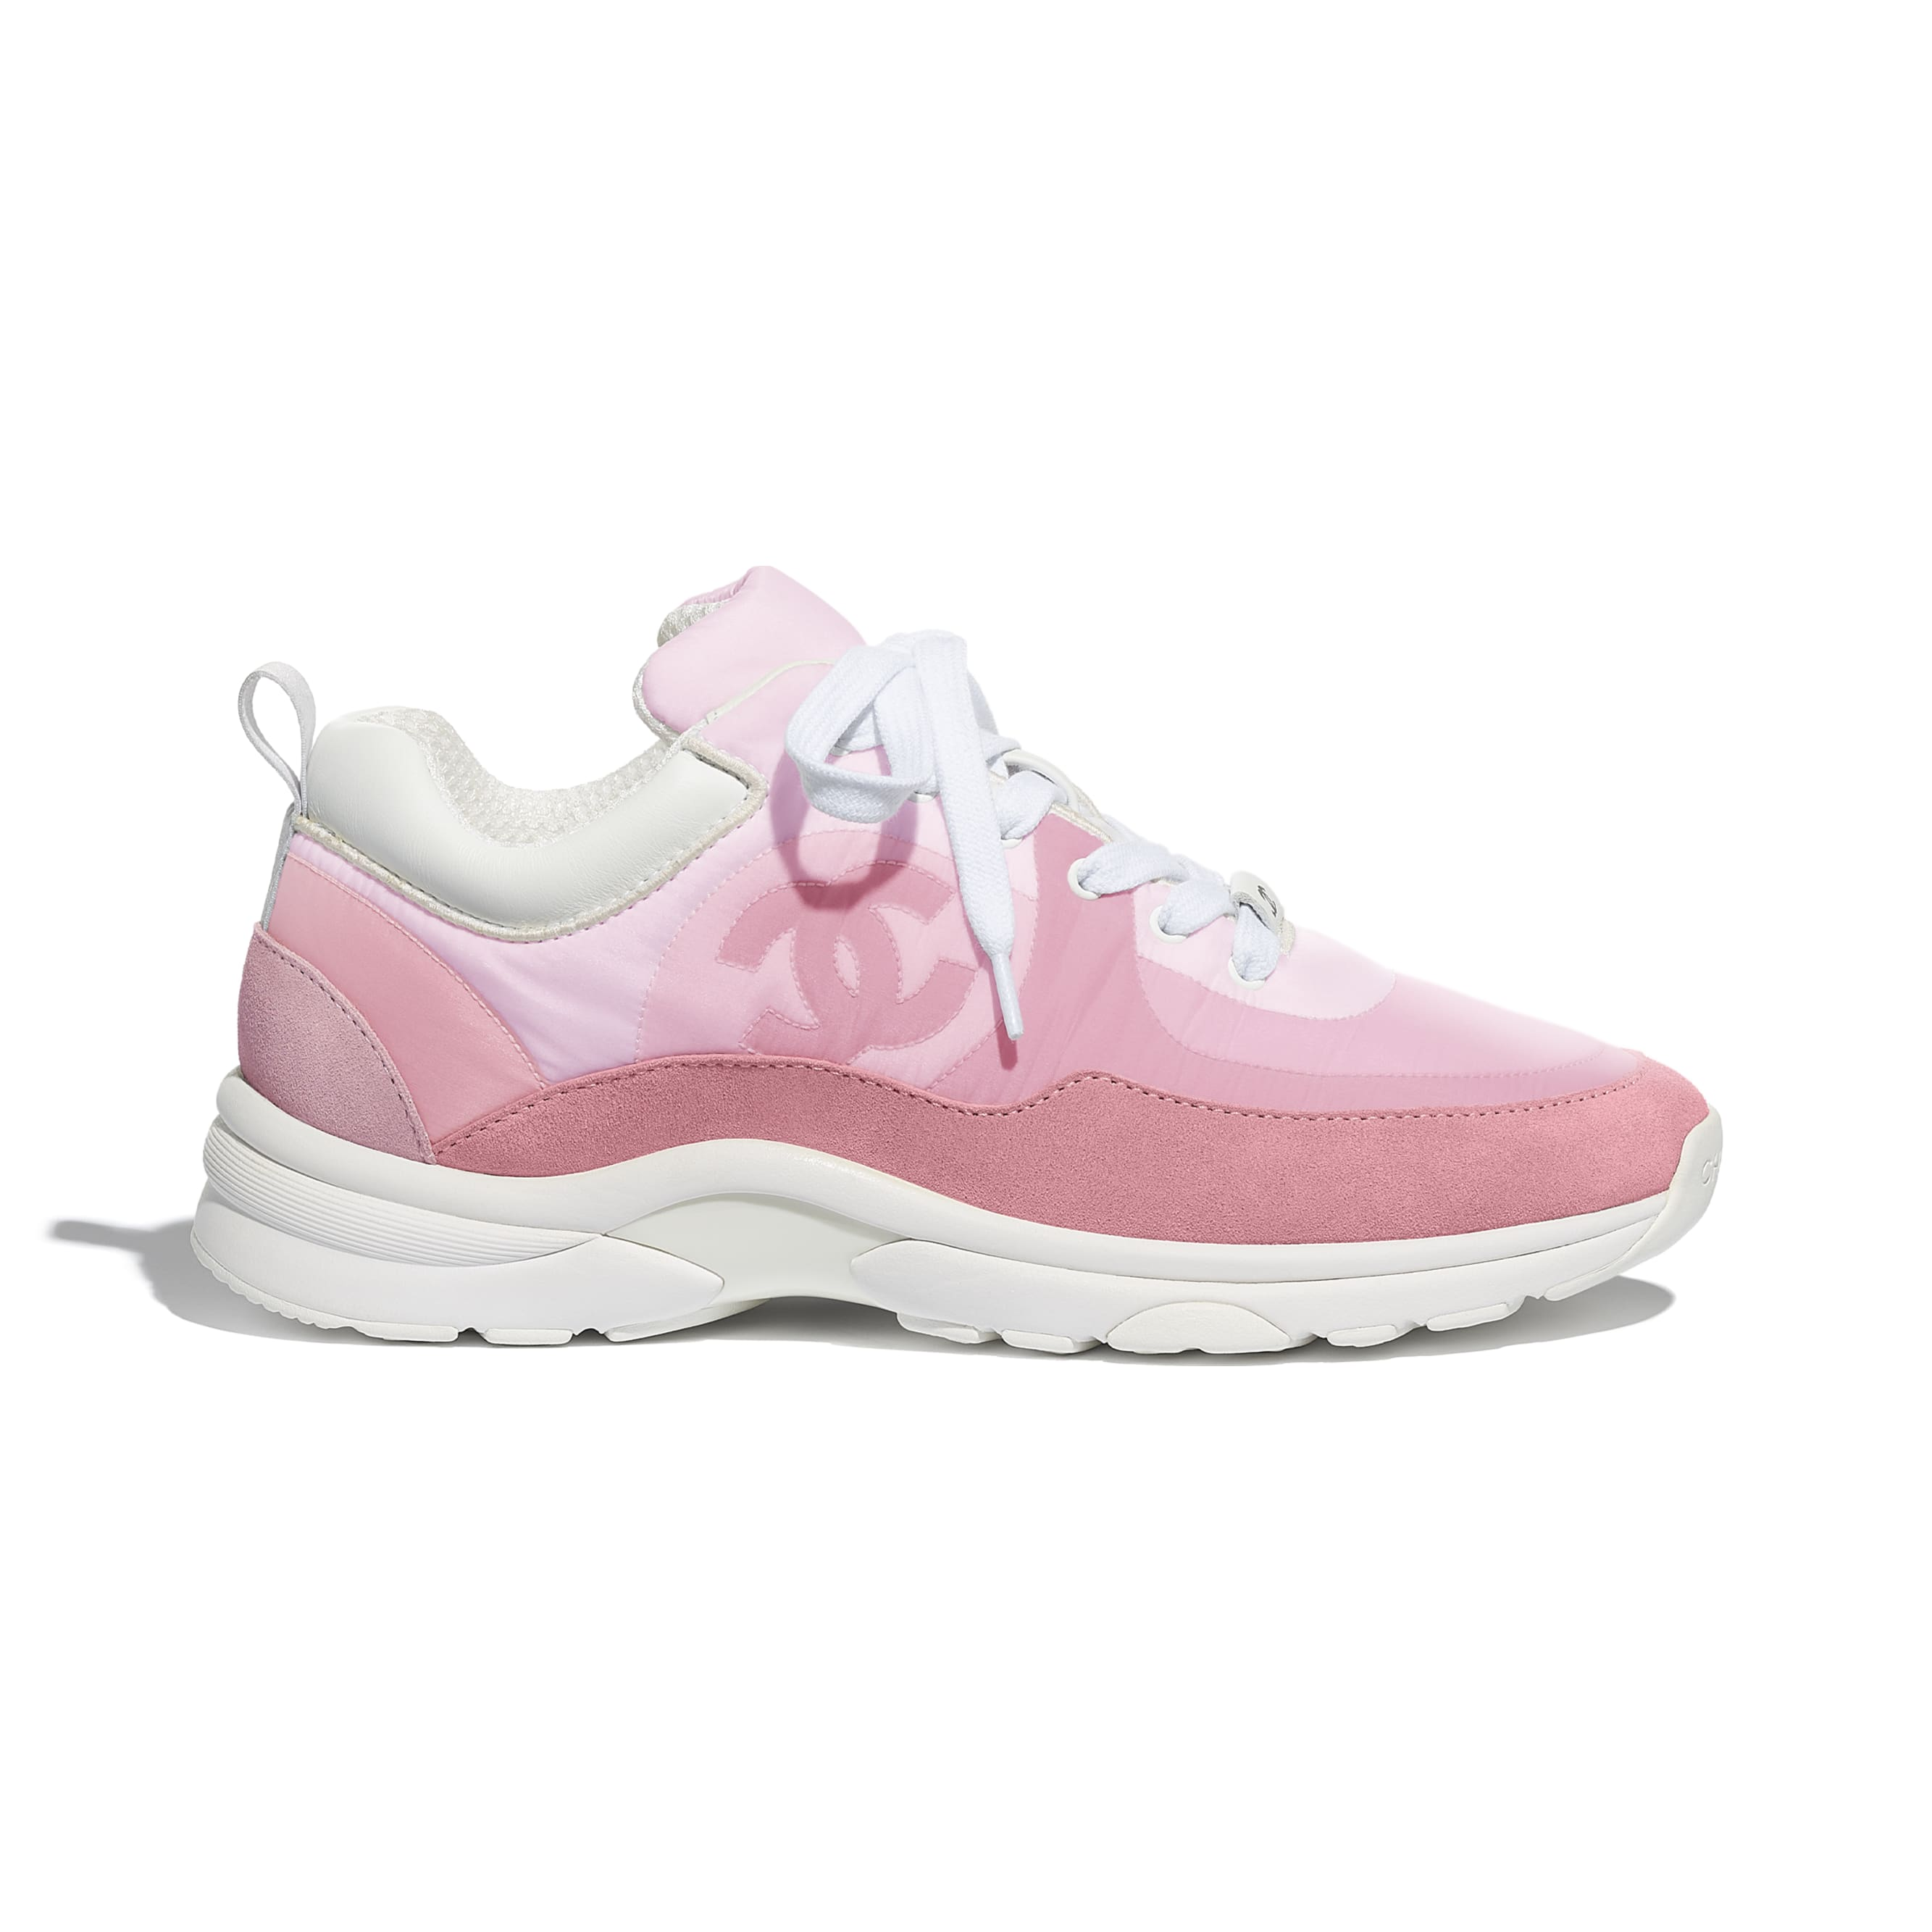 Trainers - Pale Pink - Suede Calfskin & Nylon - CHANEL - Default view - see standard sized version